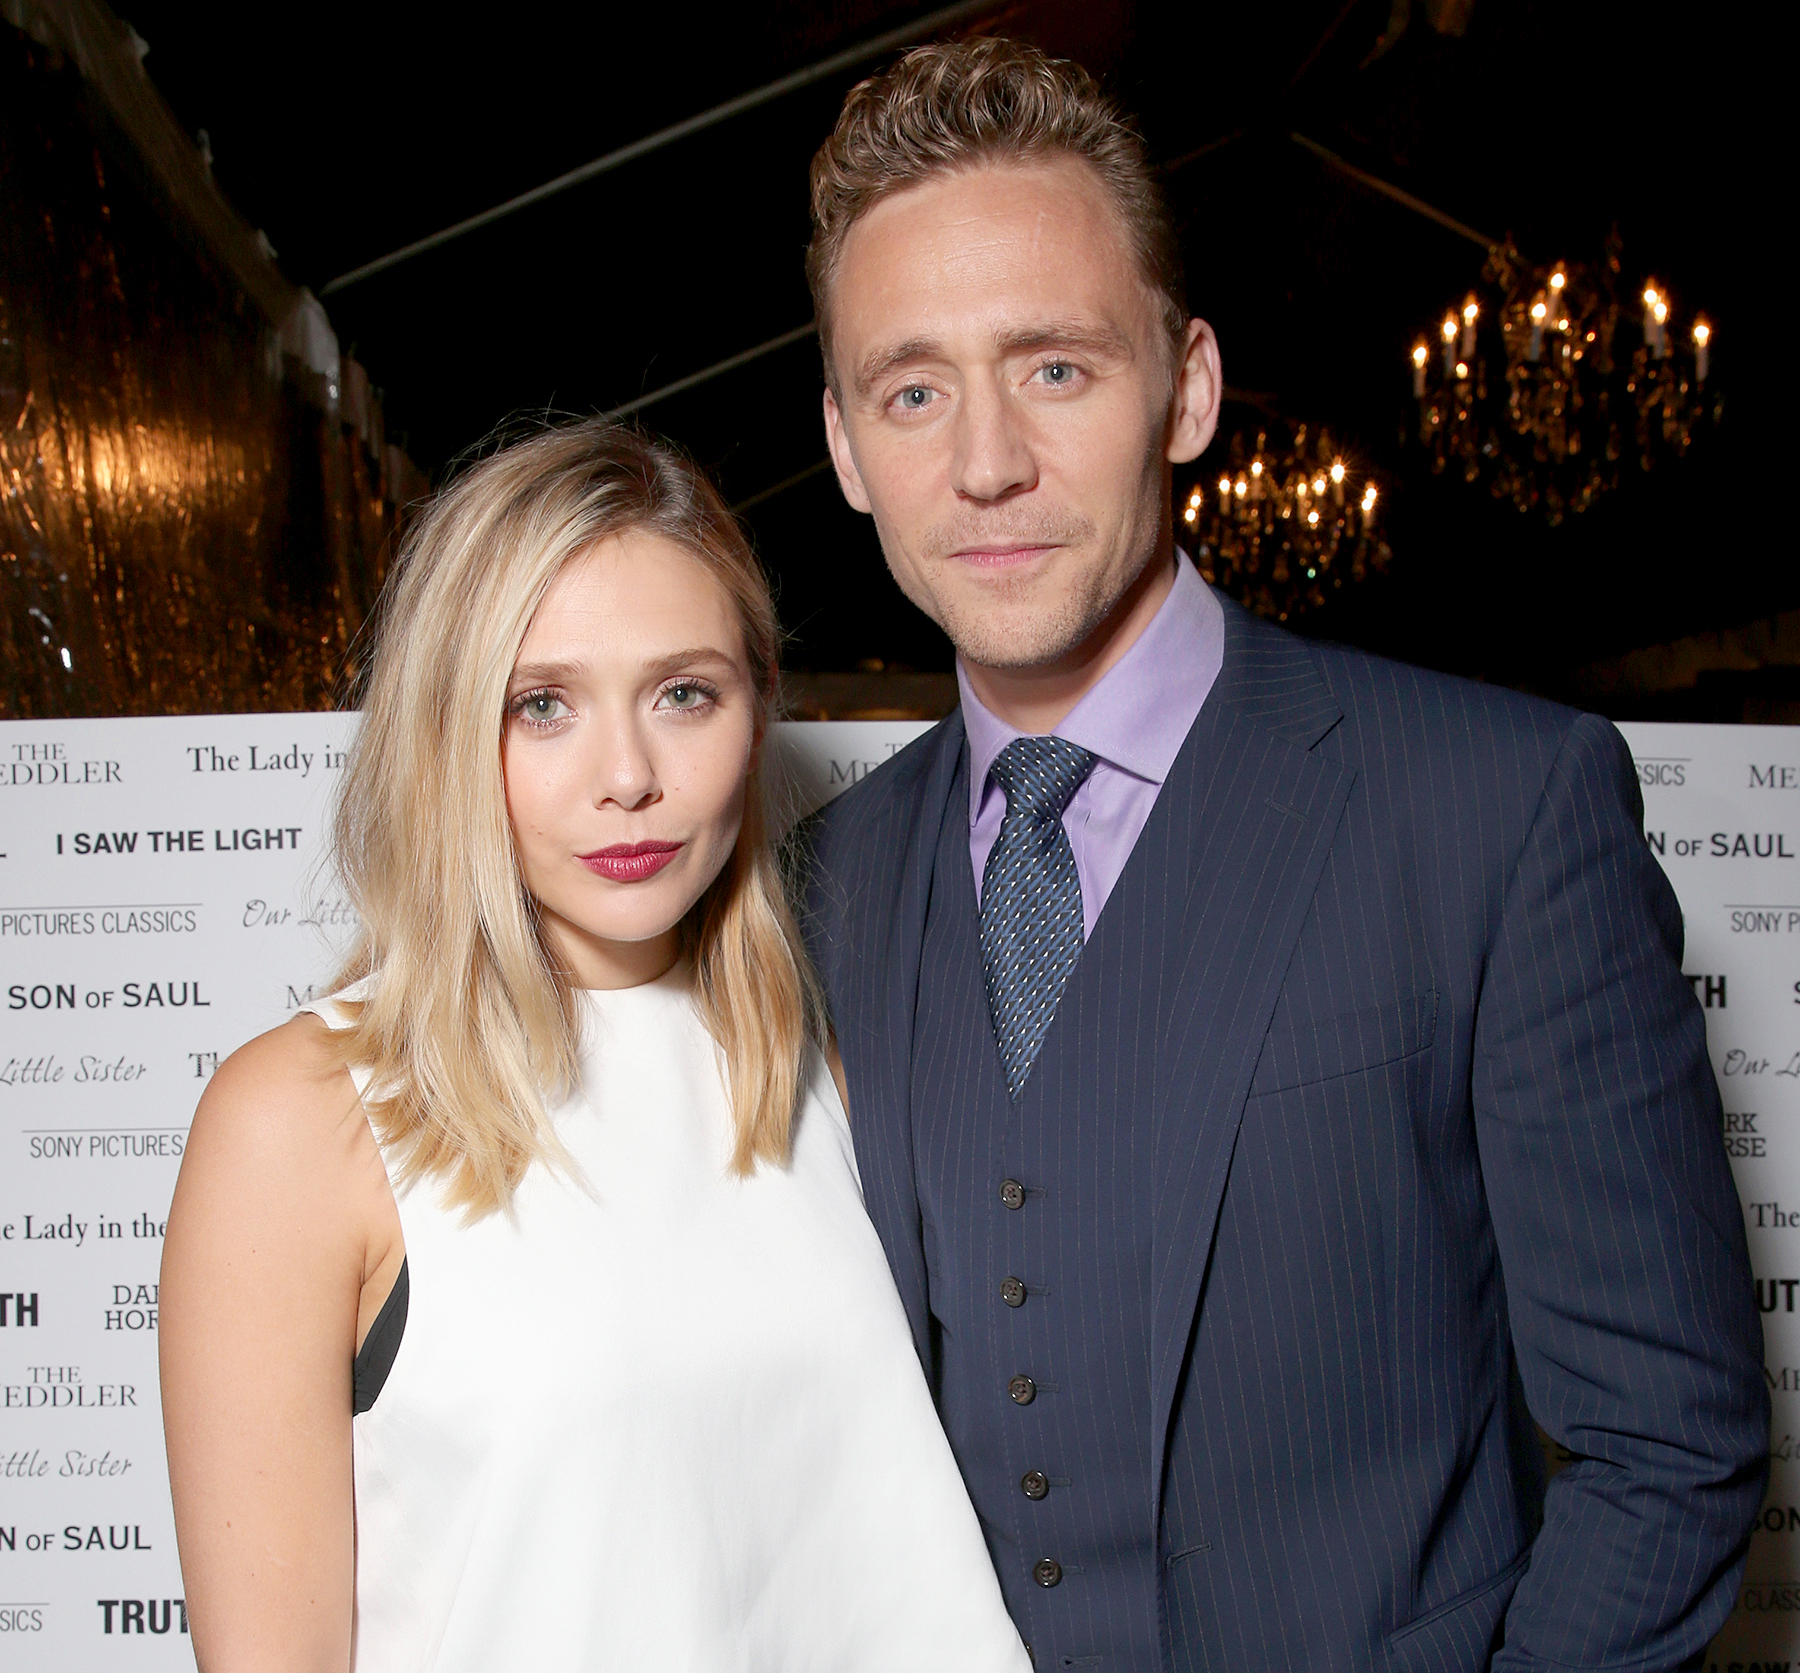 Tom Hiddleston and Elizabeth Olsen attend the Sony Pictures Classics party during the 2015 Toronto International Film Festival.